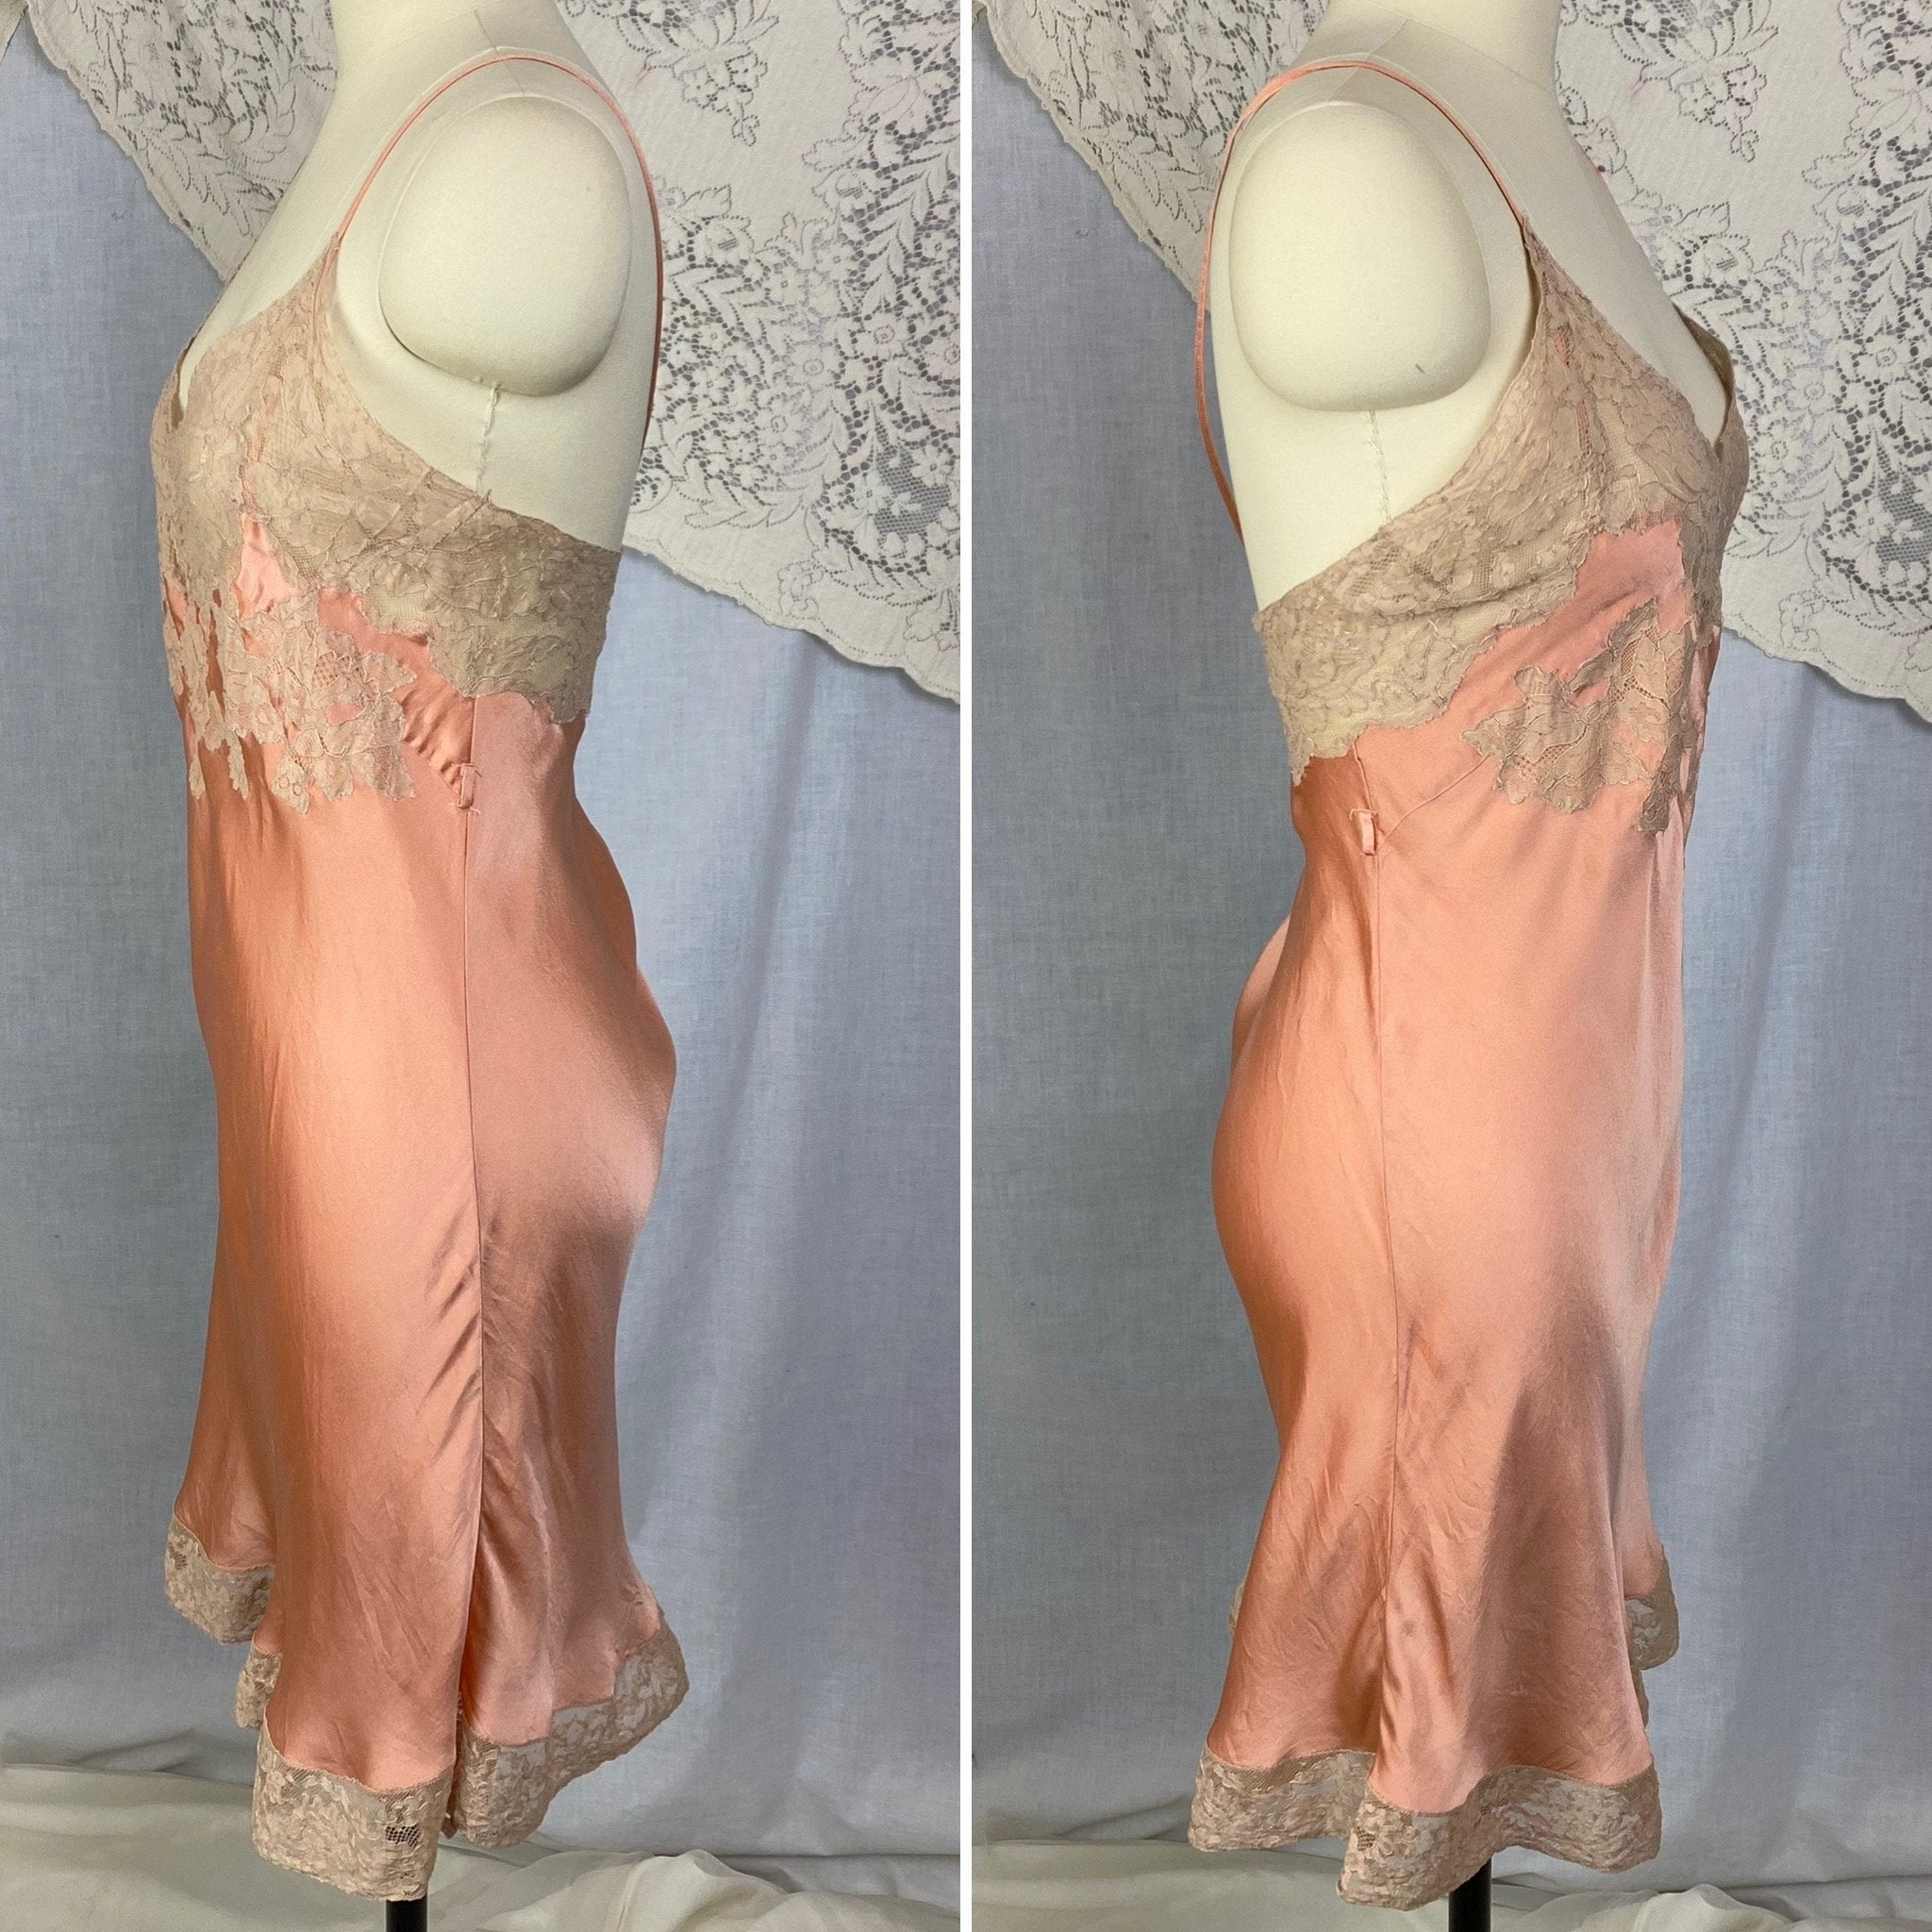 Vintage 1930's Teddy Chemise | Deep Coral Pink Silk Charmeuse with Nude Lace | Size 40-42 Bust, LG XL | Barbara Lee - Daggers & Dames